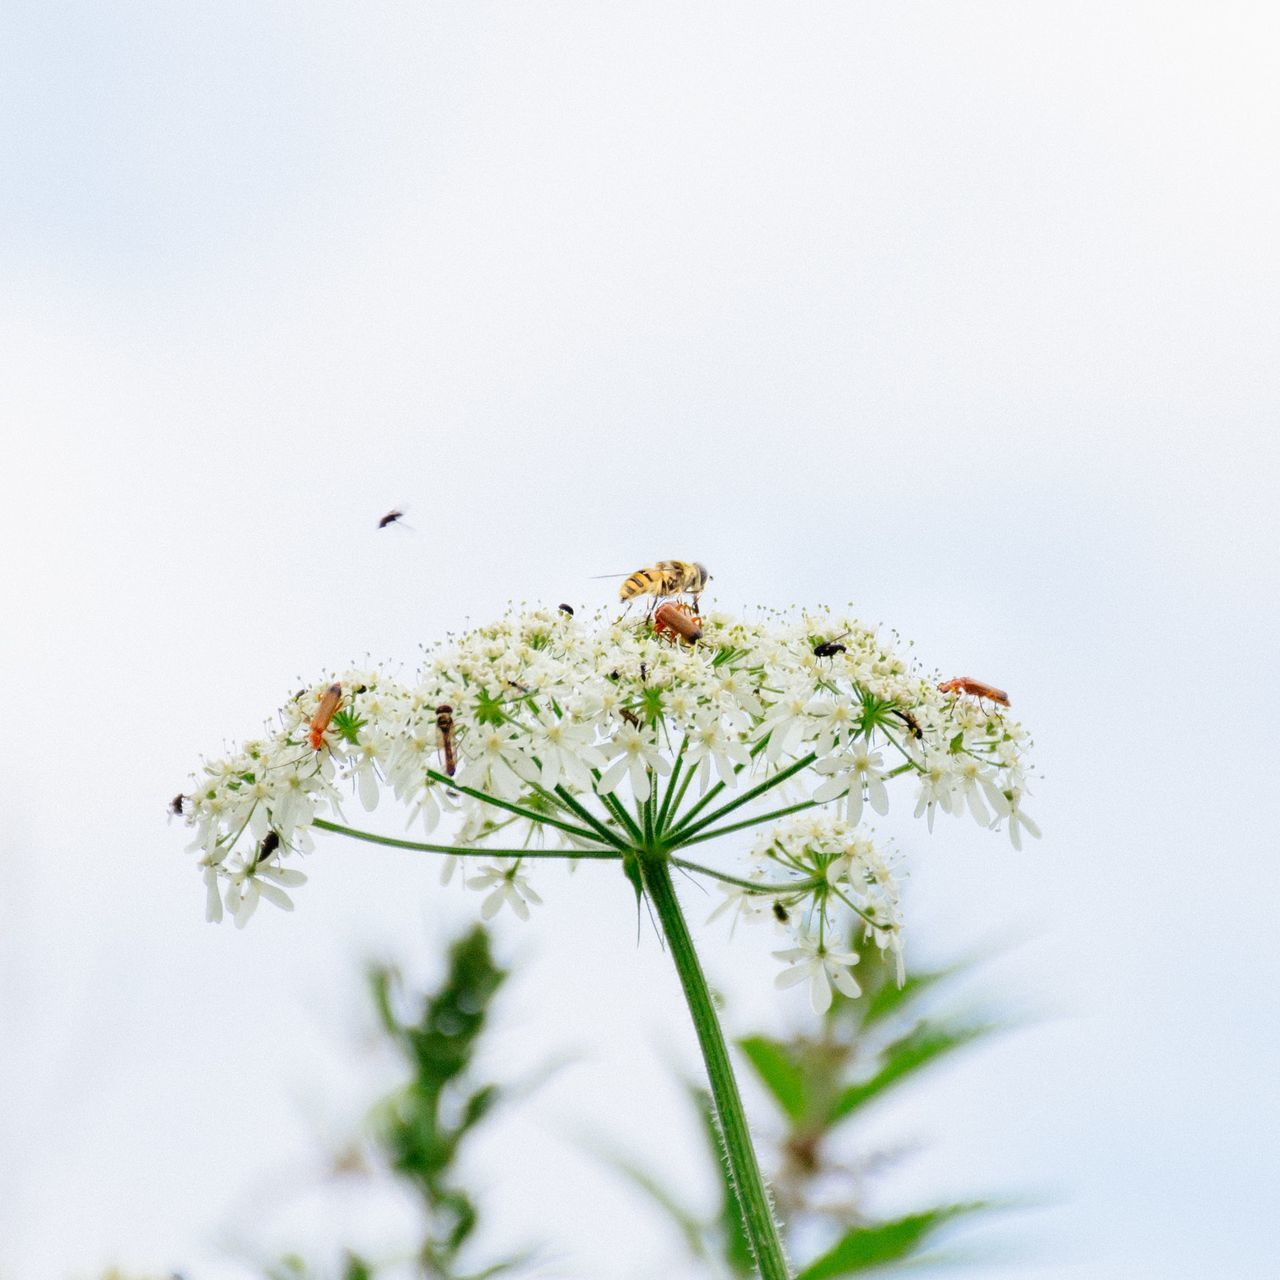 Crowded crowded insect photography insects Insects beautiful nature